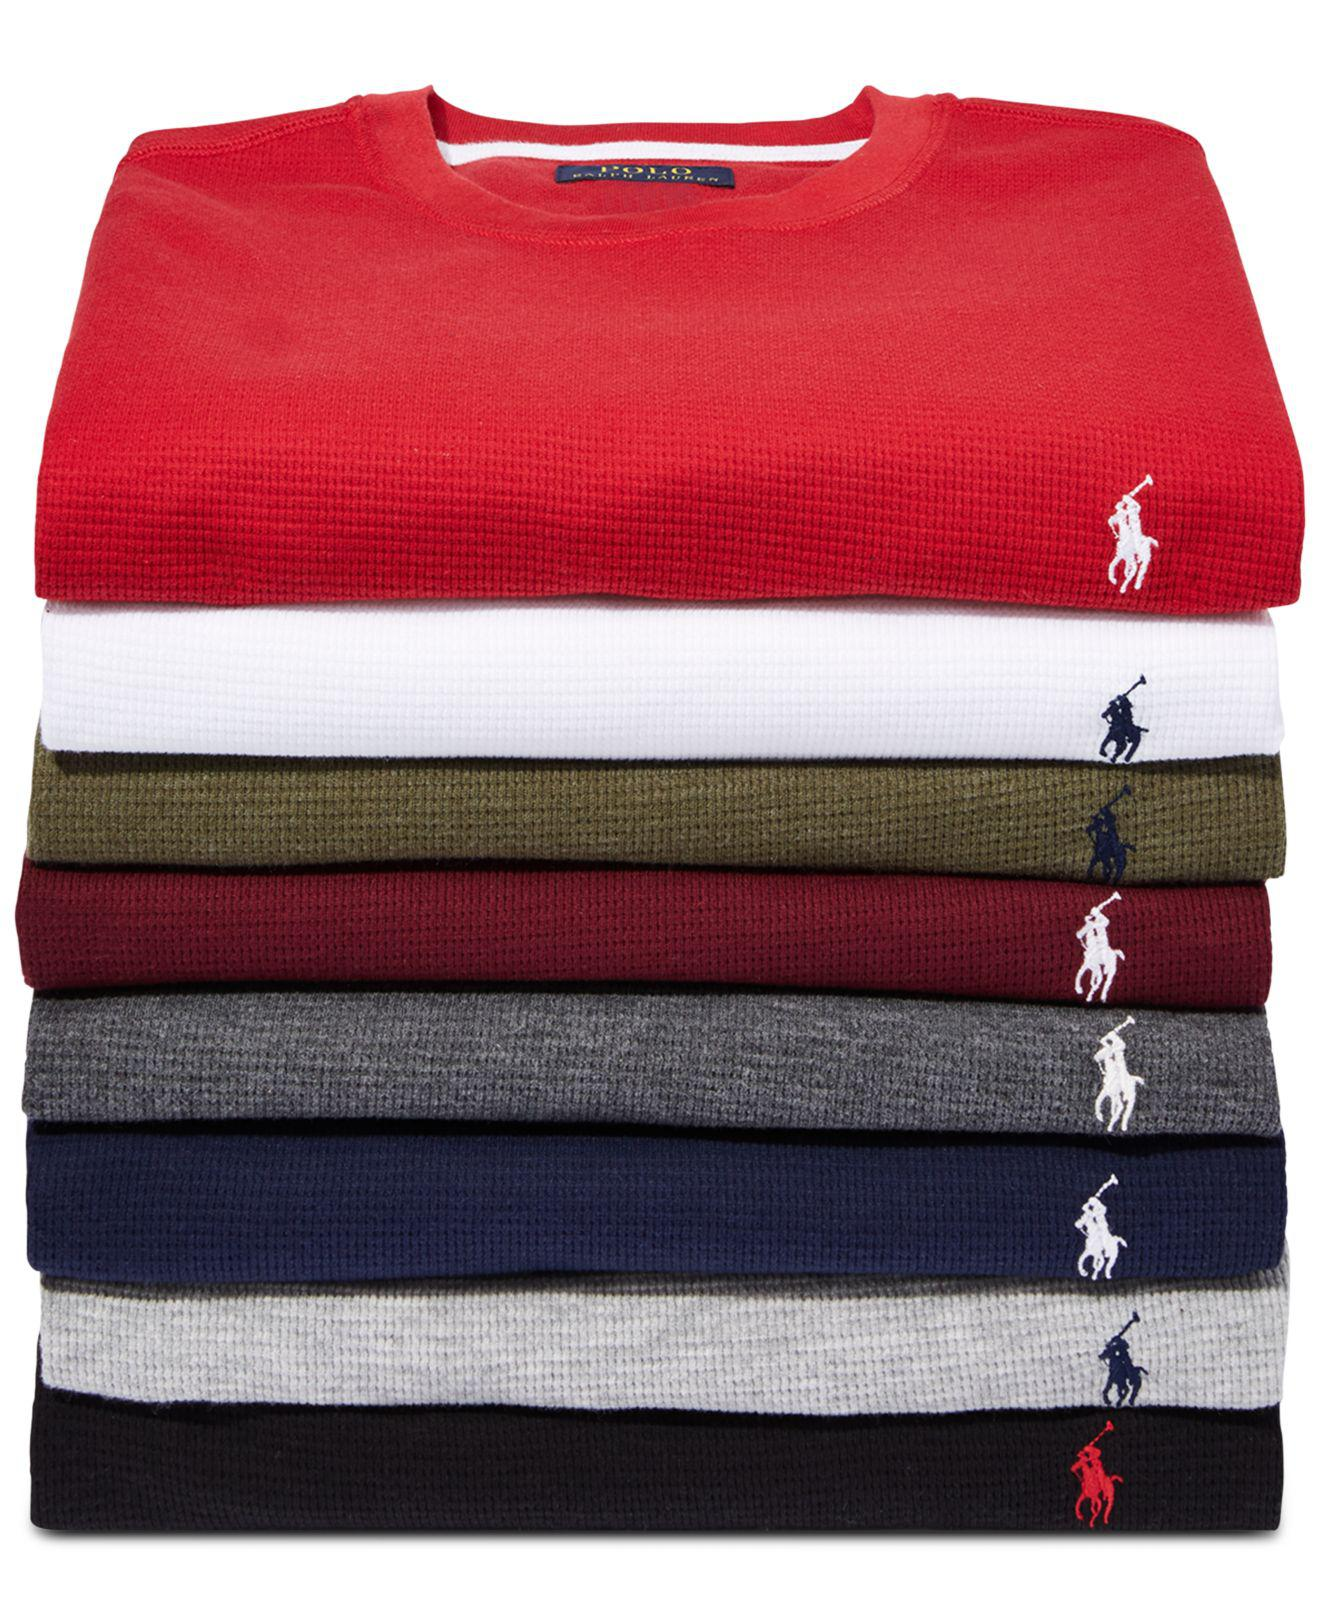 5e5262b3f Lyst - Polo Ralph Lauren Waffle-knit Thermal in Gray for Men